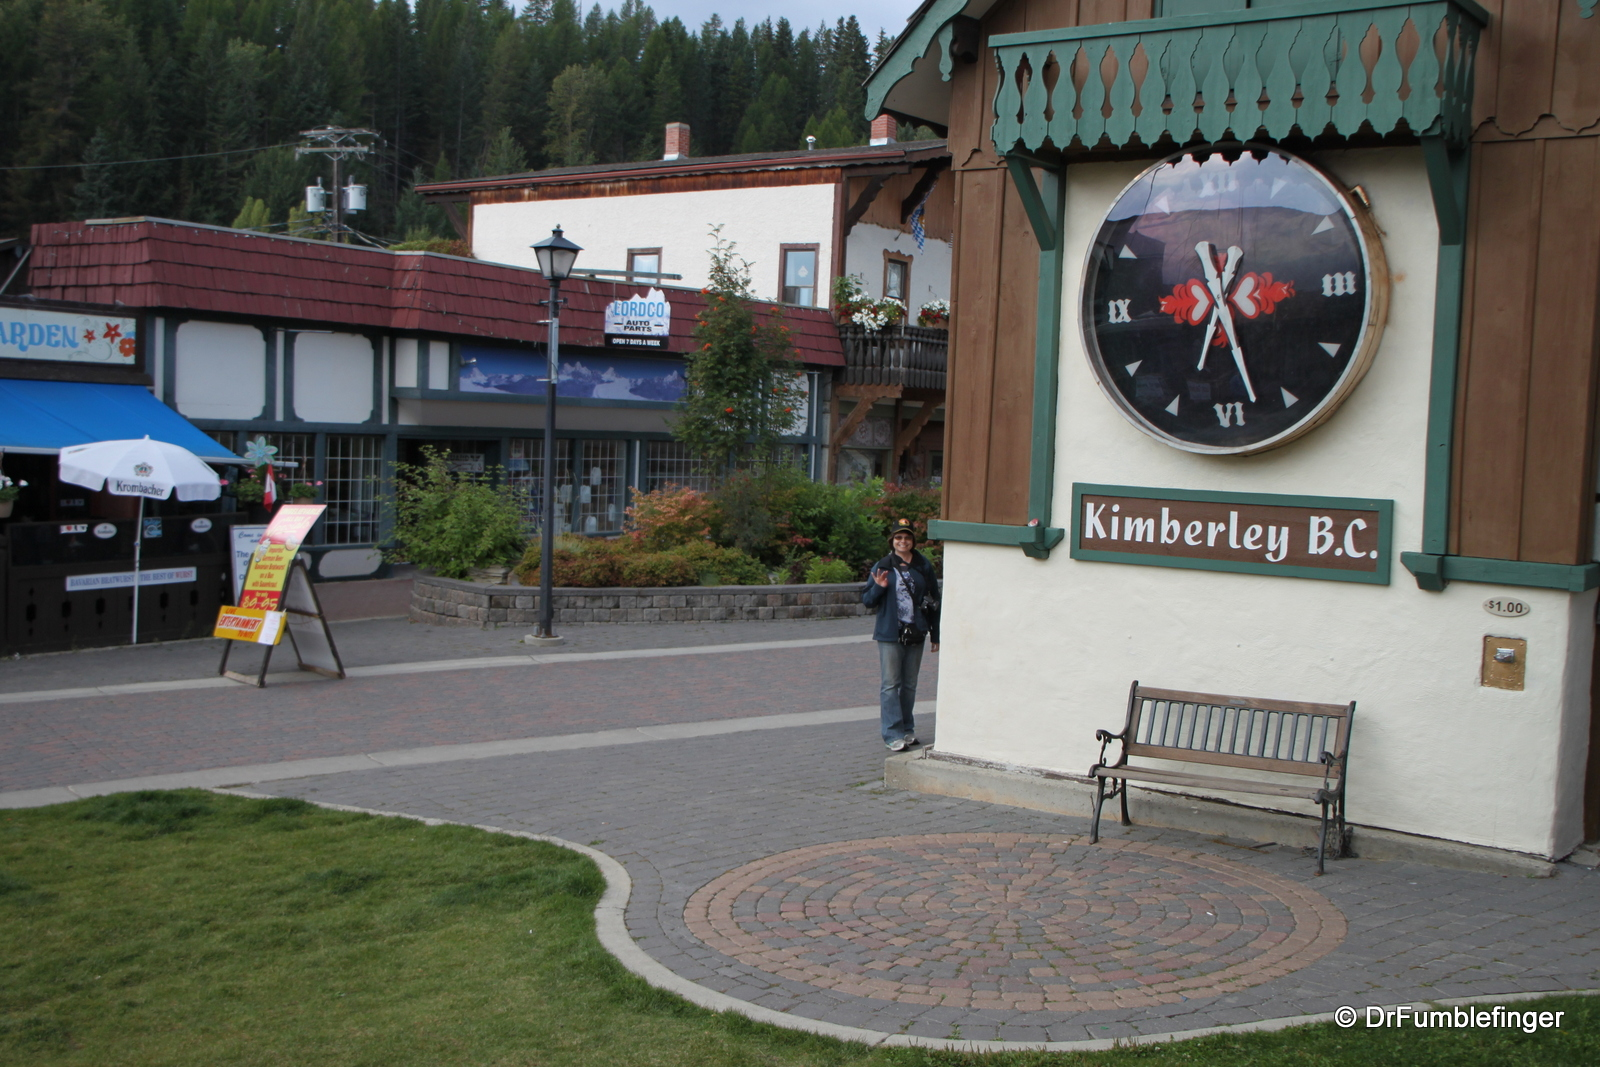 Canada's largest free-standing cuckoo clock